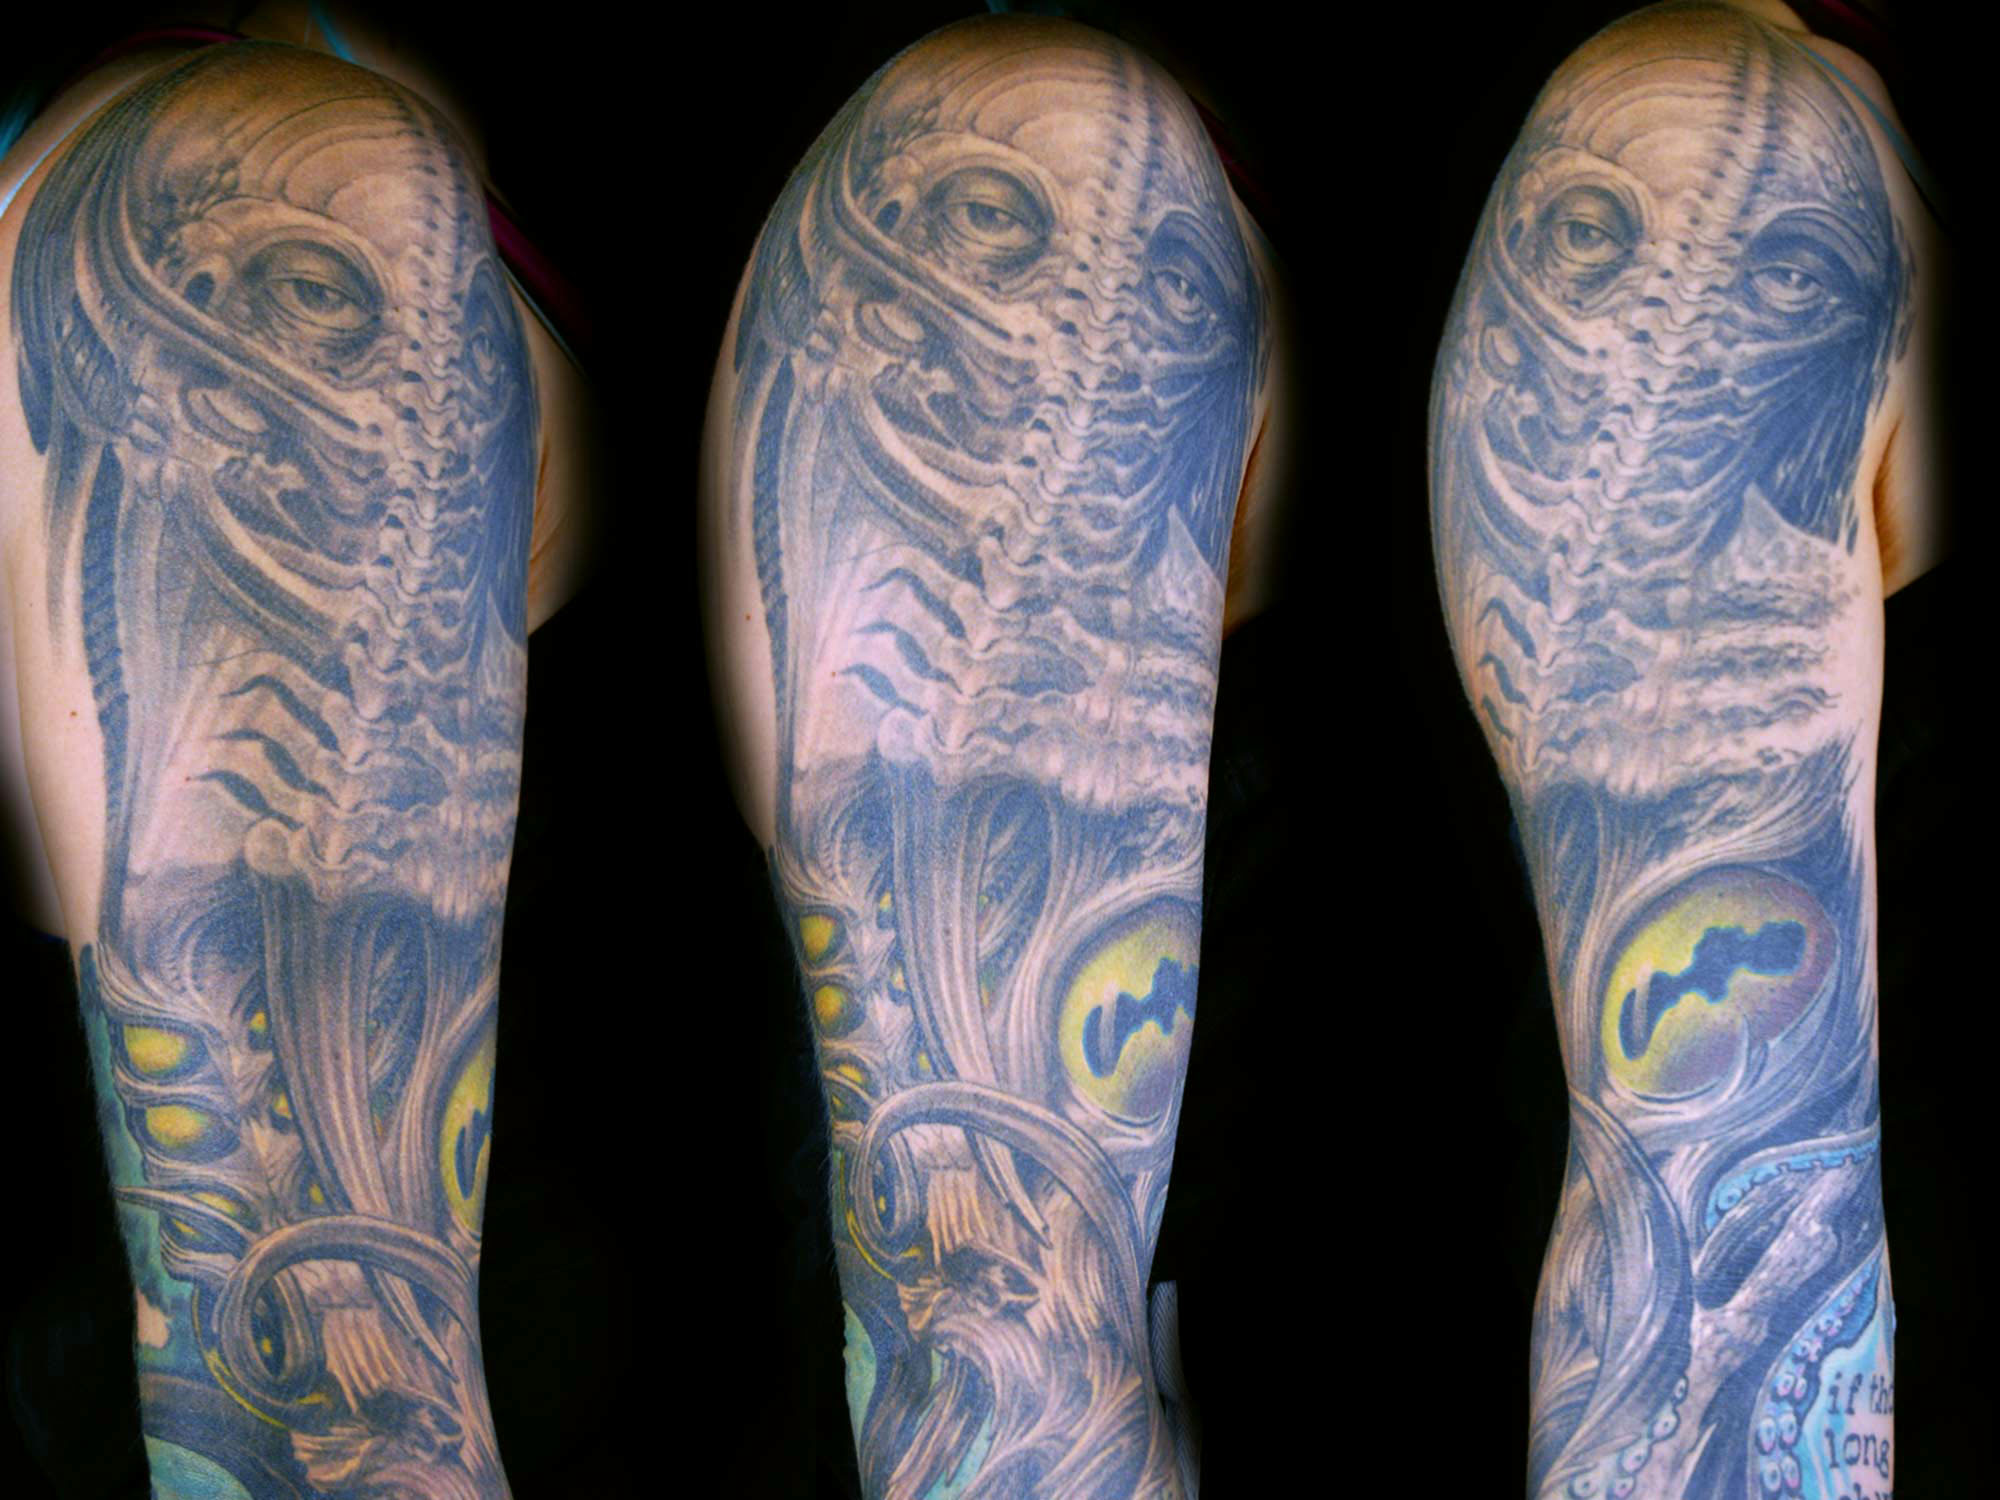 Biomechanik-Krake-Giger-Alien Hits for  Life Shit for life it for life tattoo Raul München Munich